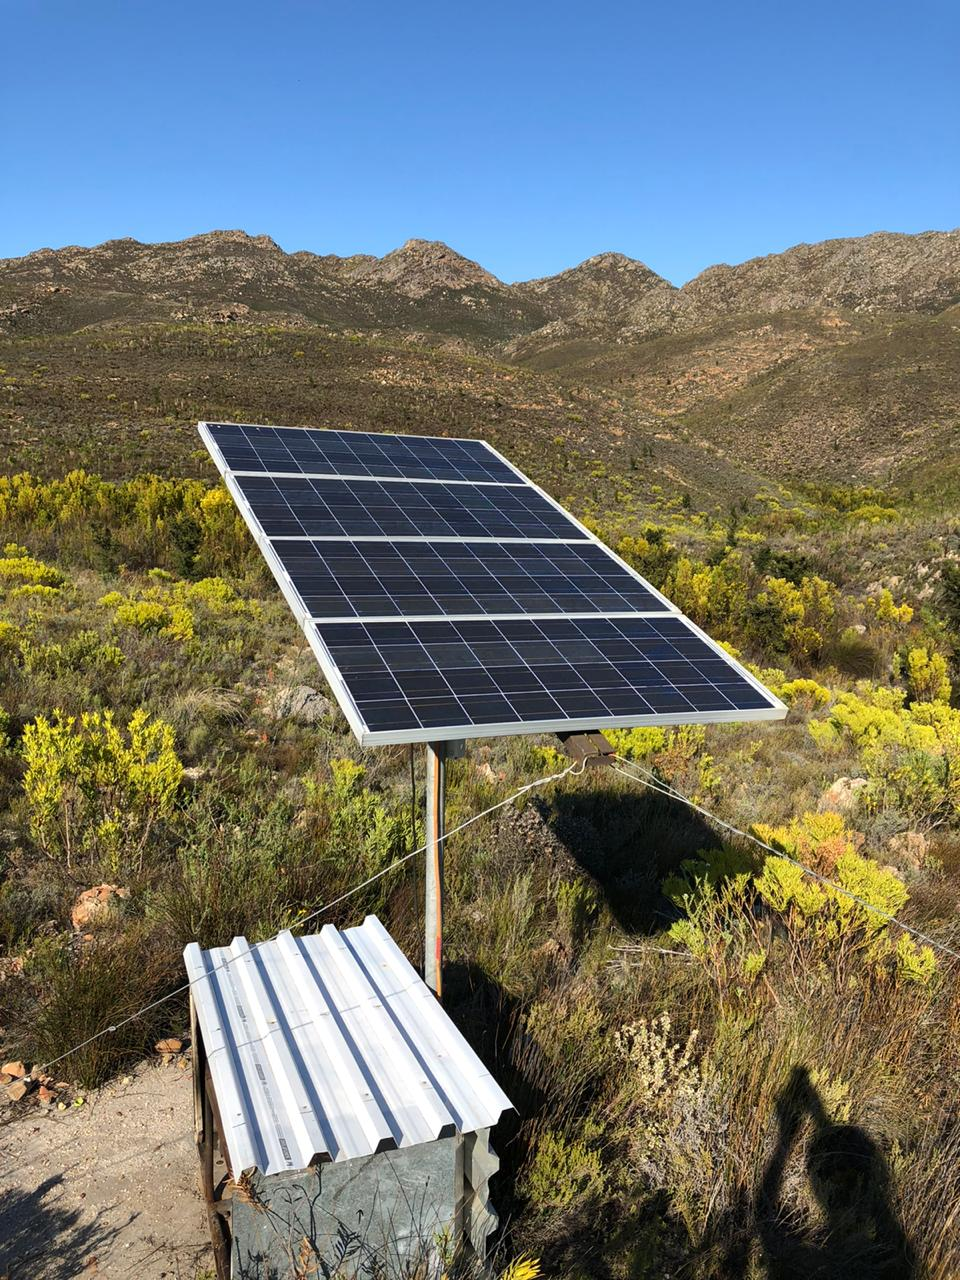 Solar Panels at Starry Starry Night, Route 62, Montagu, South Africa